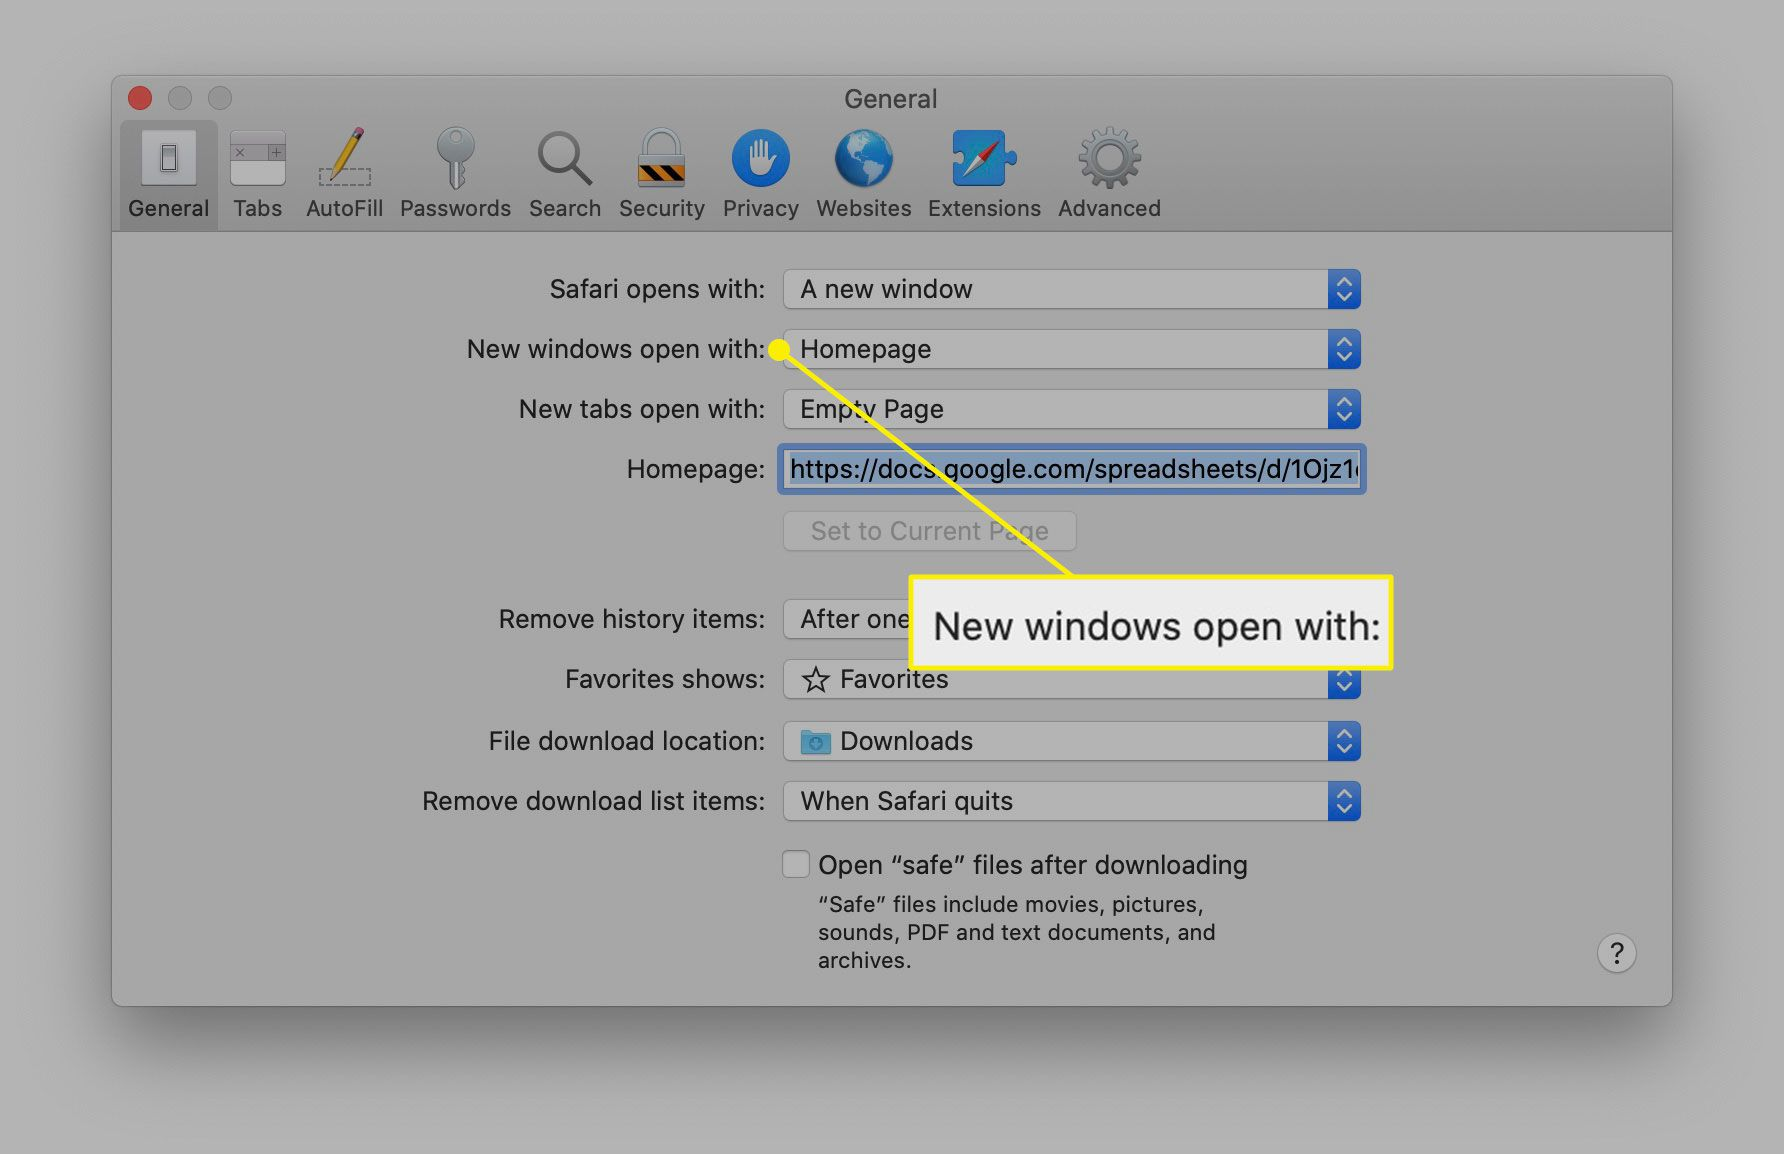 The New windows open with option in Safari